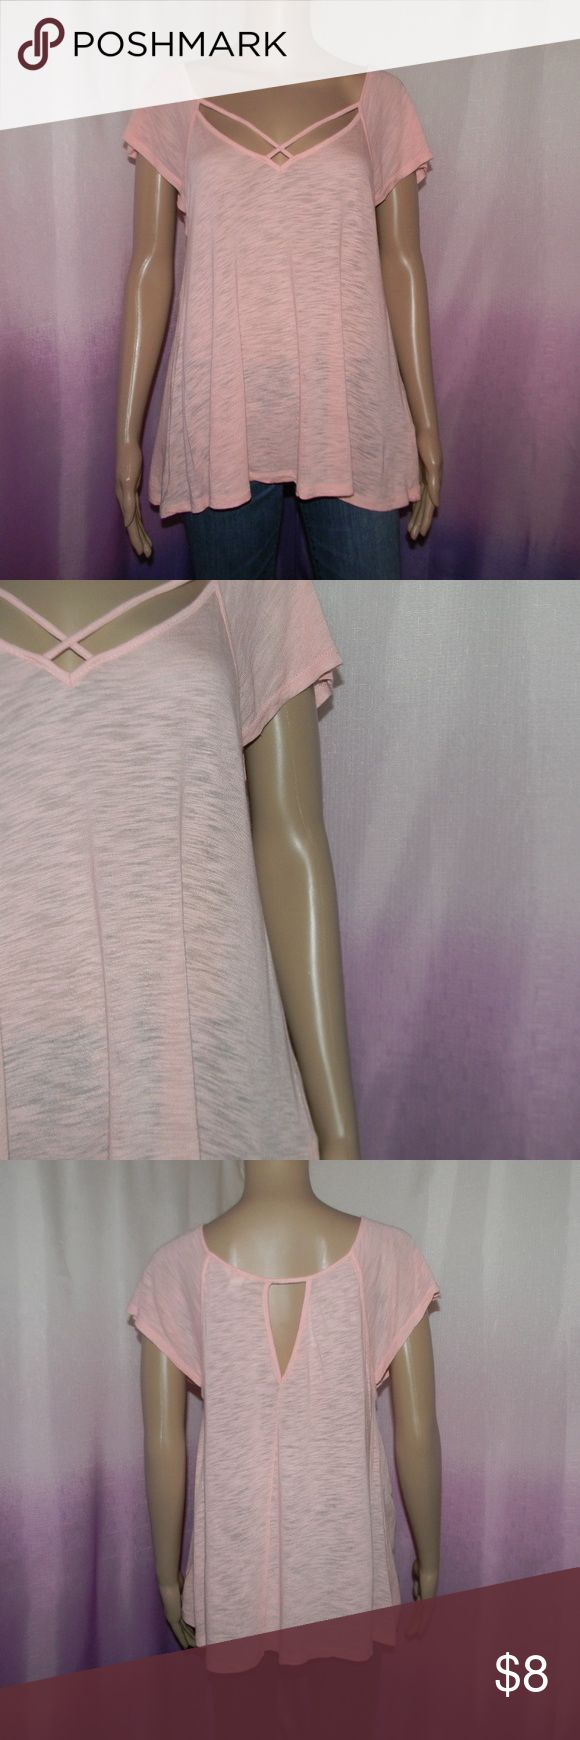 """Bethany Mota Pink Strappy Top Size medium, very good condition, 80% rayon 20% cotton, 17"""" bust, 26"""" long, worn 5-7 times -Sorry NO TRADES and NO HOLDS -Ships from California -Comes from smoke free, dog friendly homes -I can't model at this time, the mannequin measurements are 32.5"""" bust, 24"""" waist, 34"""" hips, and is 5'10"""" and a size S/M -Items are measured by hand and done laying flat Bethany Mota Tops Tees - Short Sleeve"""